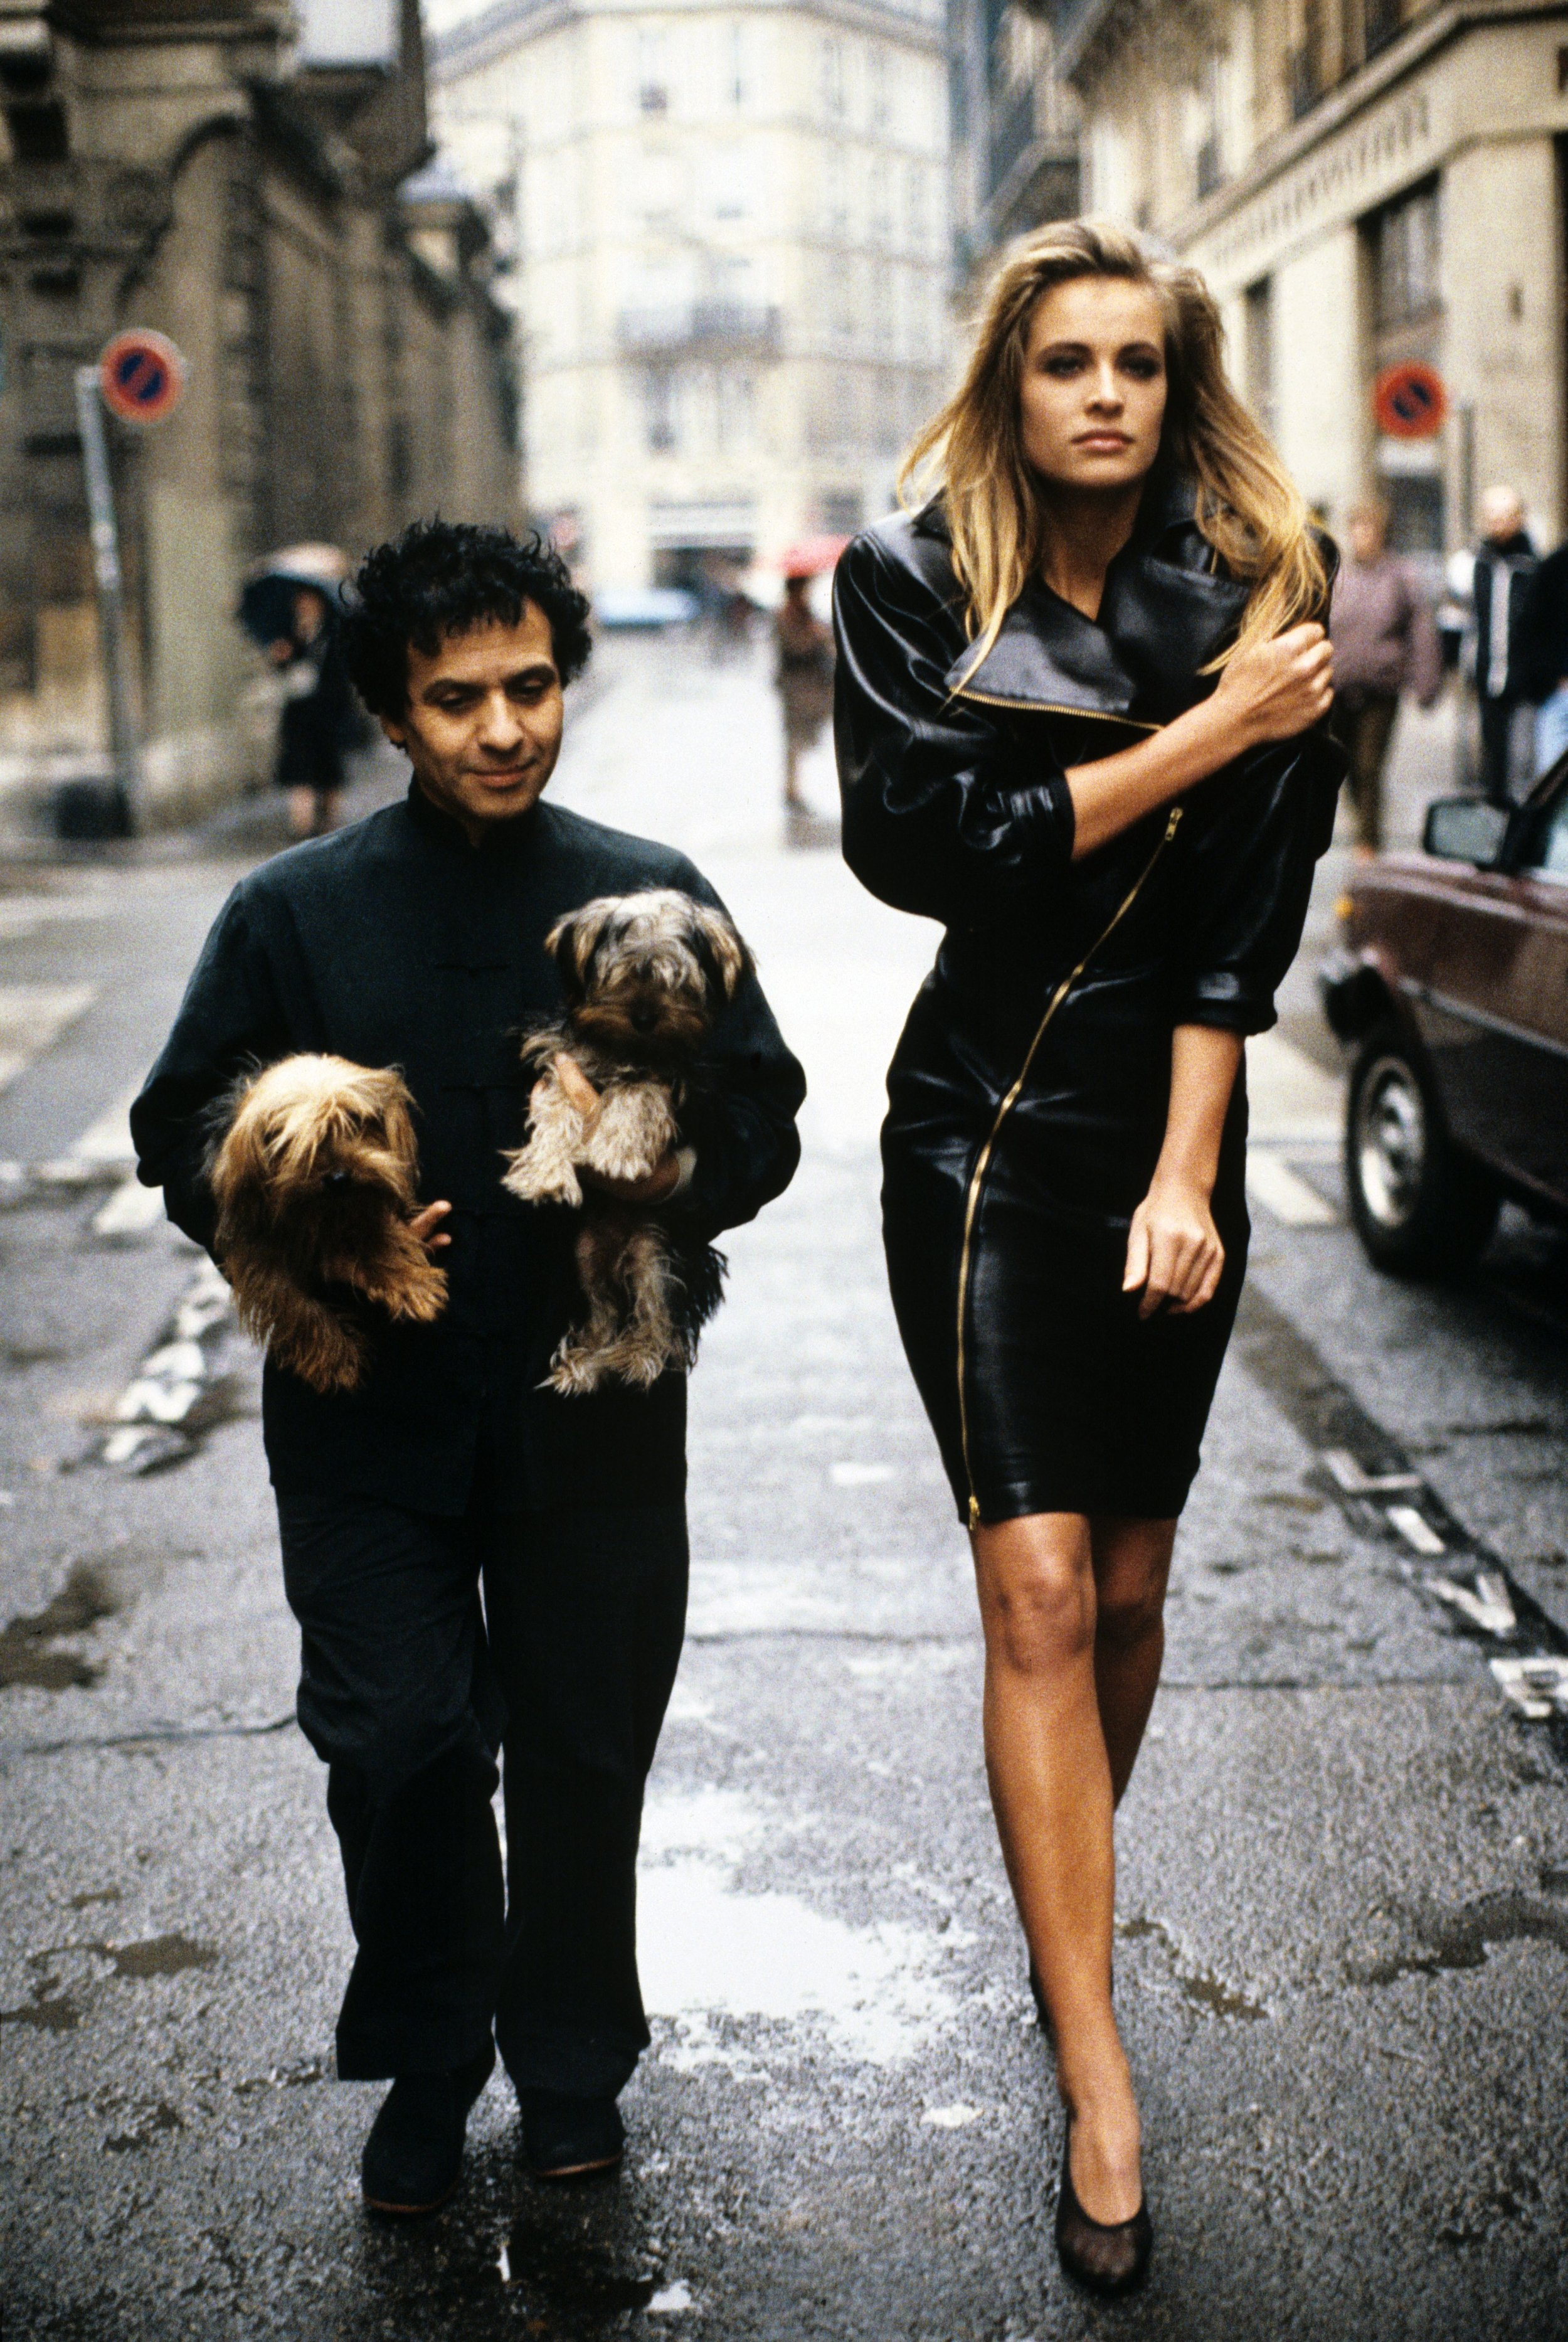 AZZEDINE ALAÏA–THE COUTURIER - by Katherine HislopHoused in the Design Museum in London, the exhibition Azzedine Alaïa – The Couturier showcases extraordinary pieces by the late, great Tunisian designer...